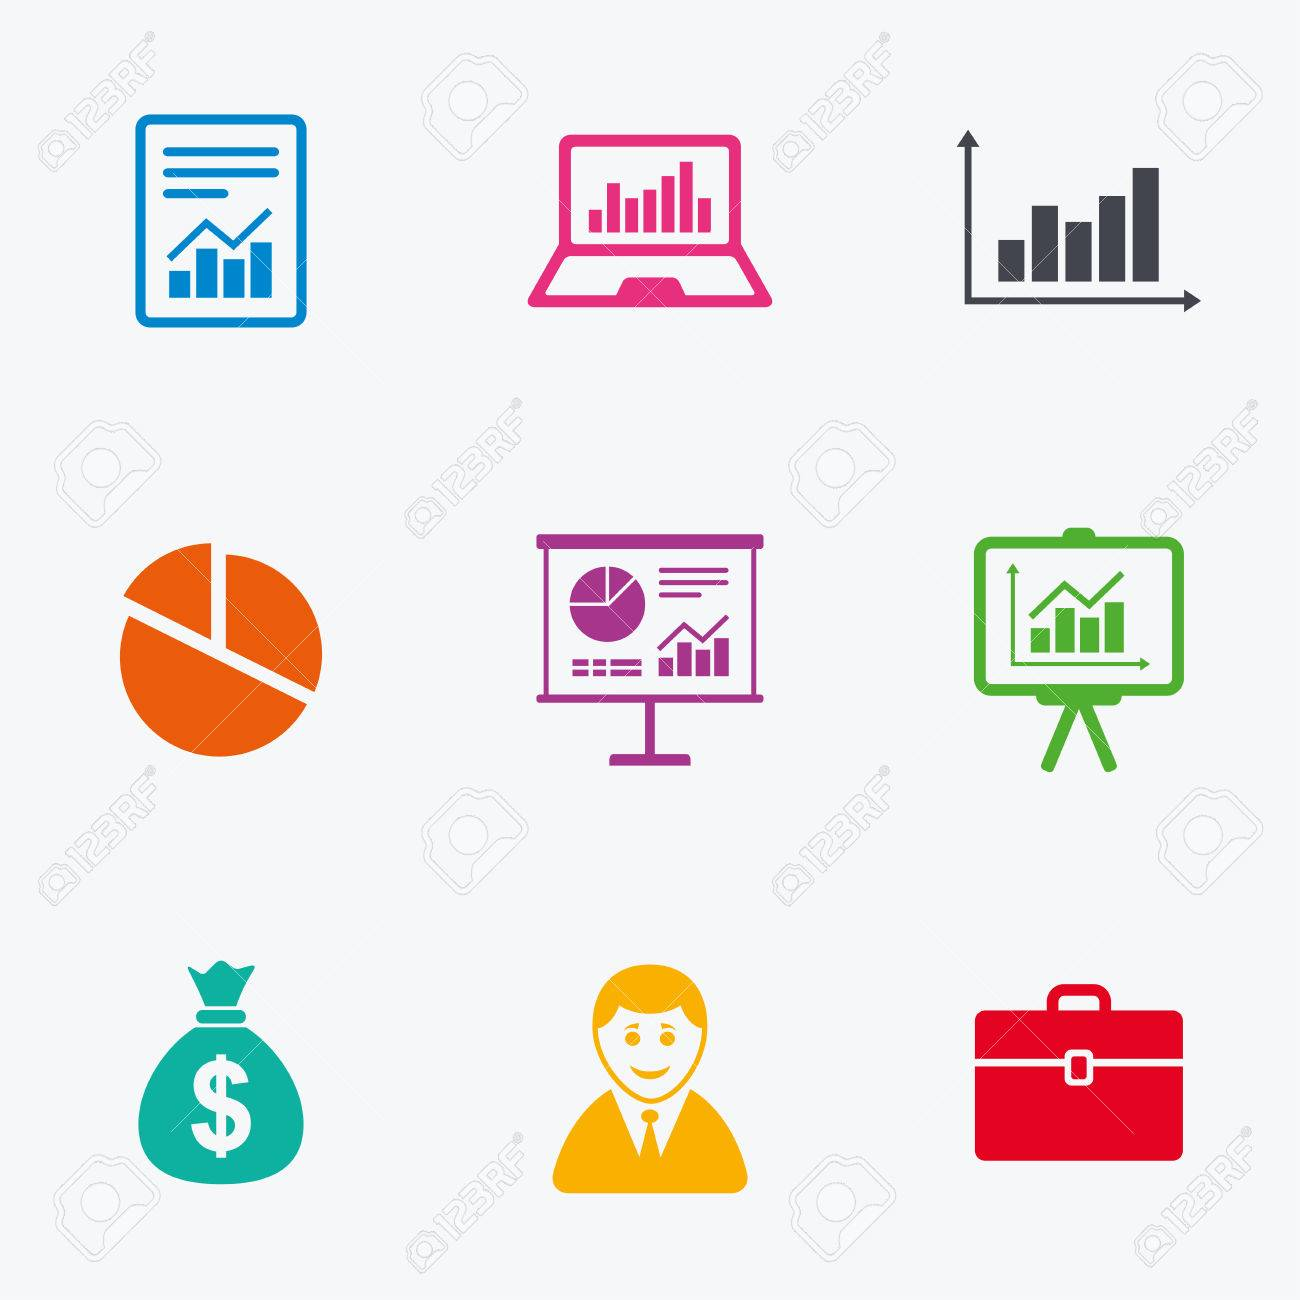 Statistics accounting icons charts presentation and pie chart statistics accounting icons charts presentation and pie chart signs analysis report geenschuldenfo Choice Image